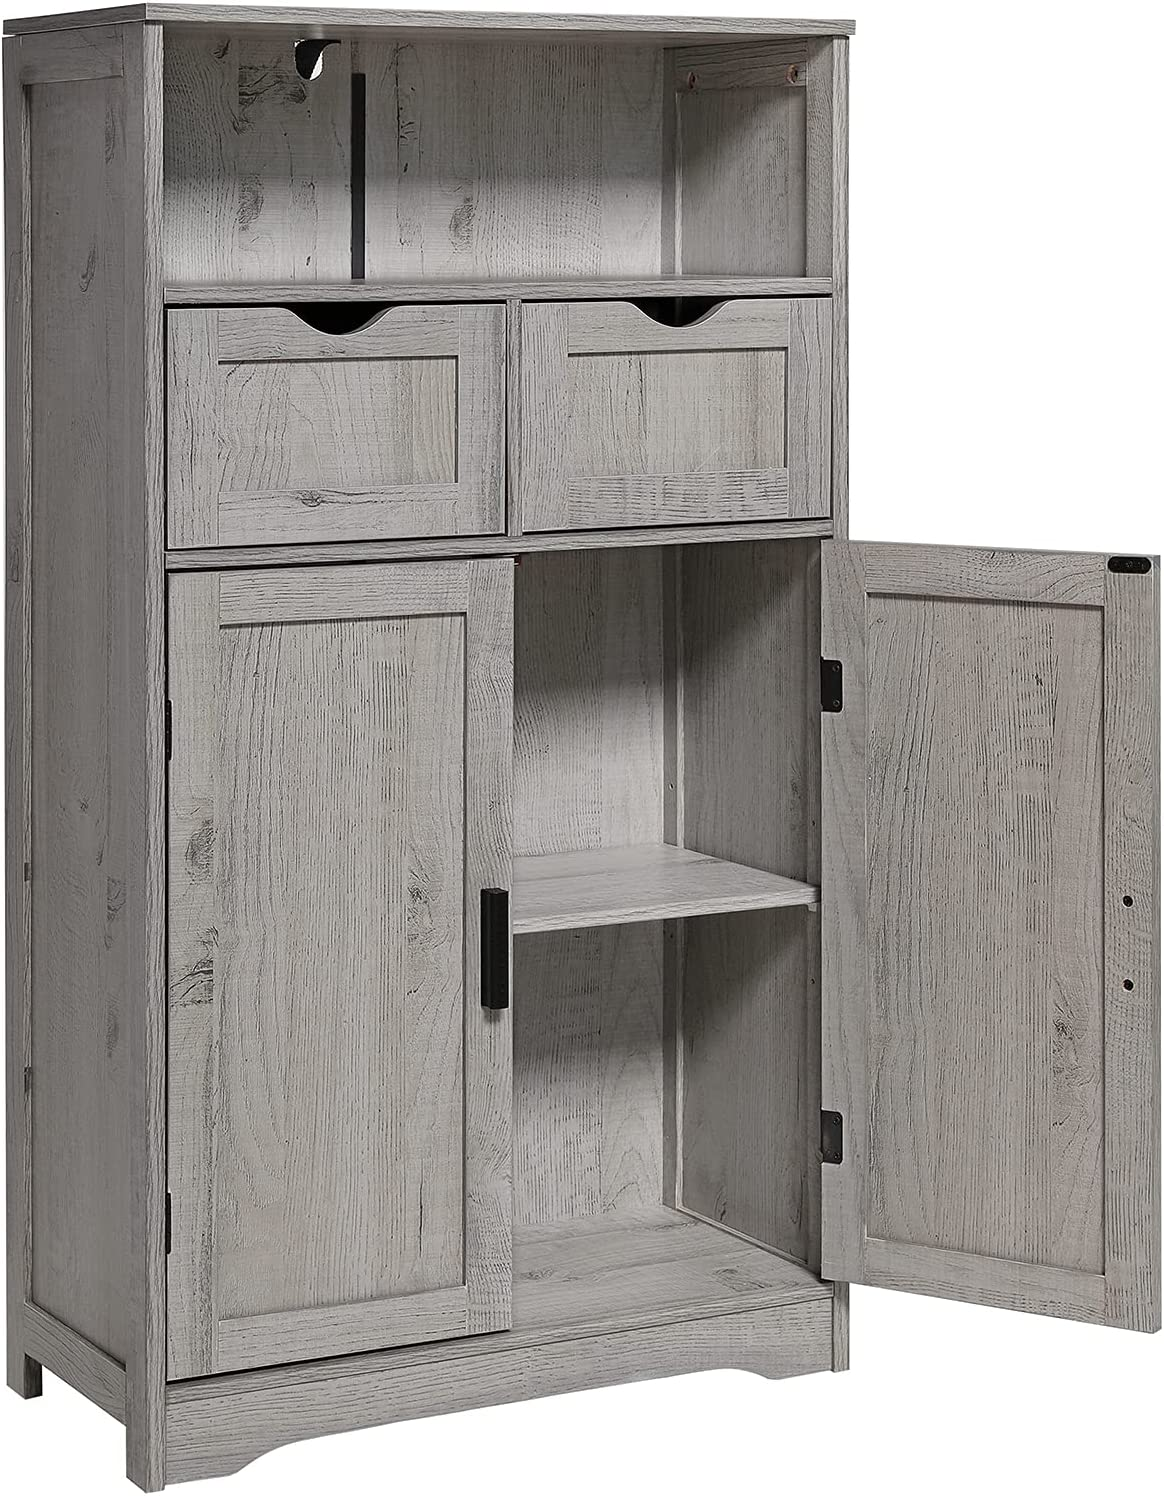 IWELL Large Storage Cabinet Special price for a limited time NEW with Shelve Drawers 2 Adjustable